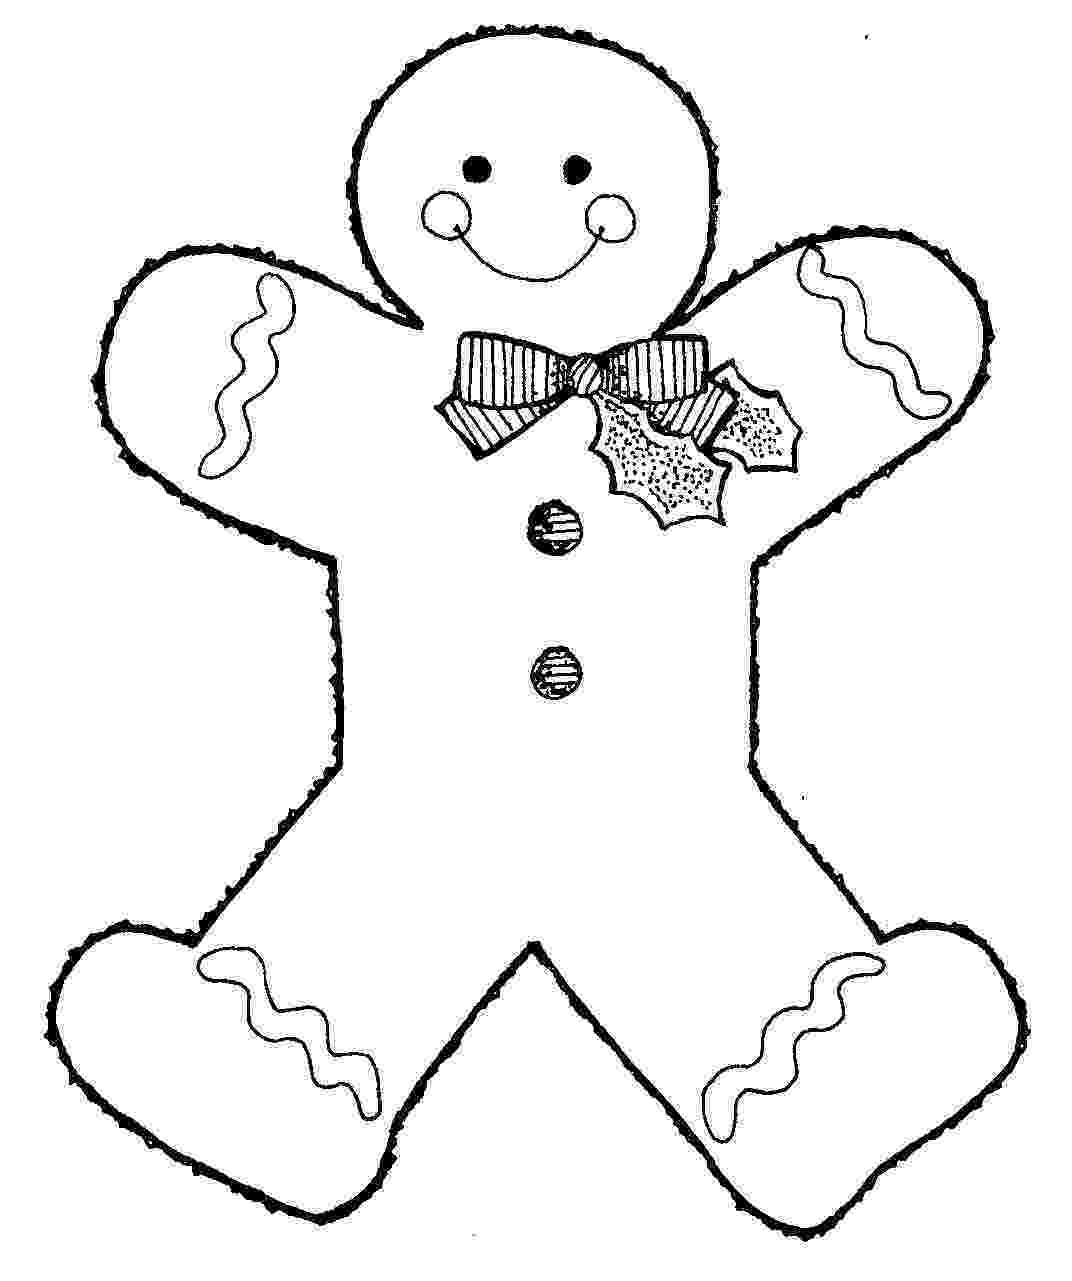 gingerbread girl template printable clip art by carrie teaching first gingerbread doodles printable gingerbread girl template